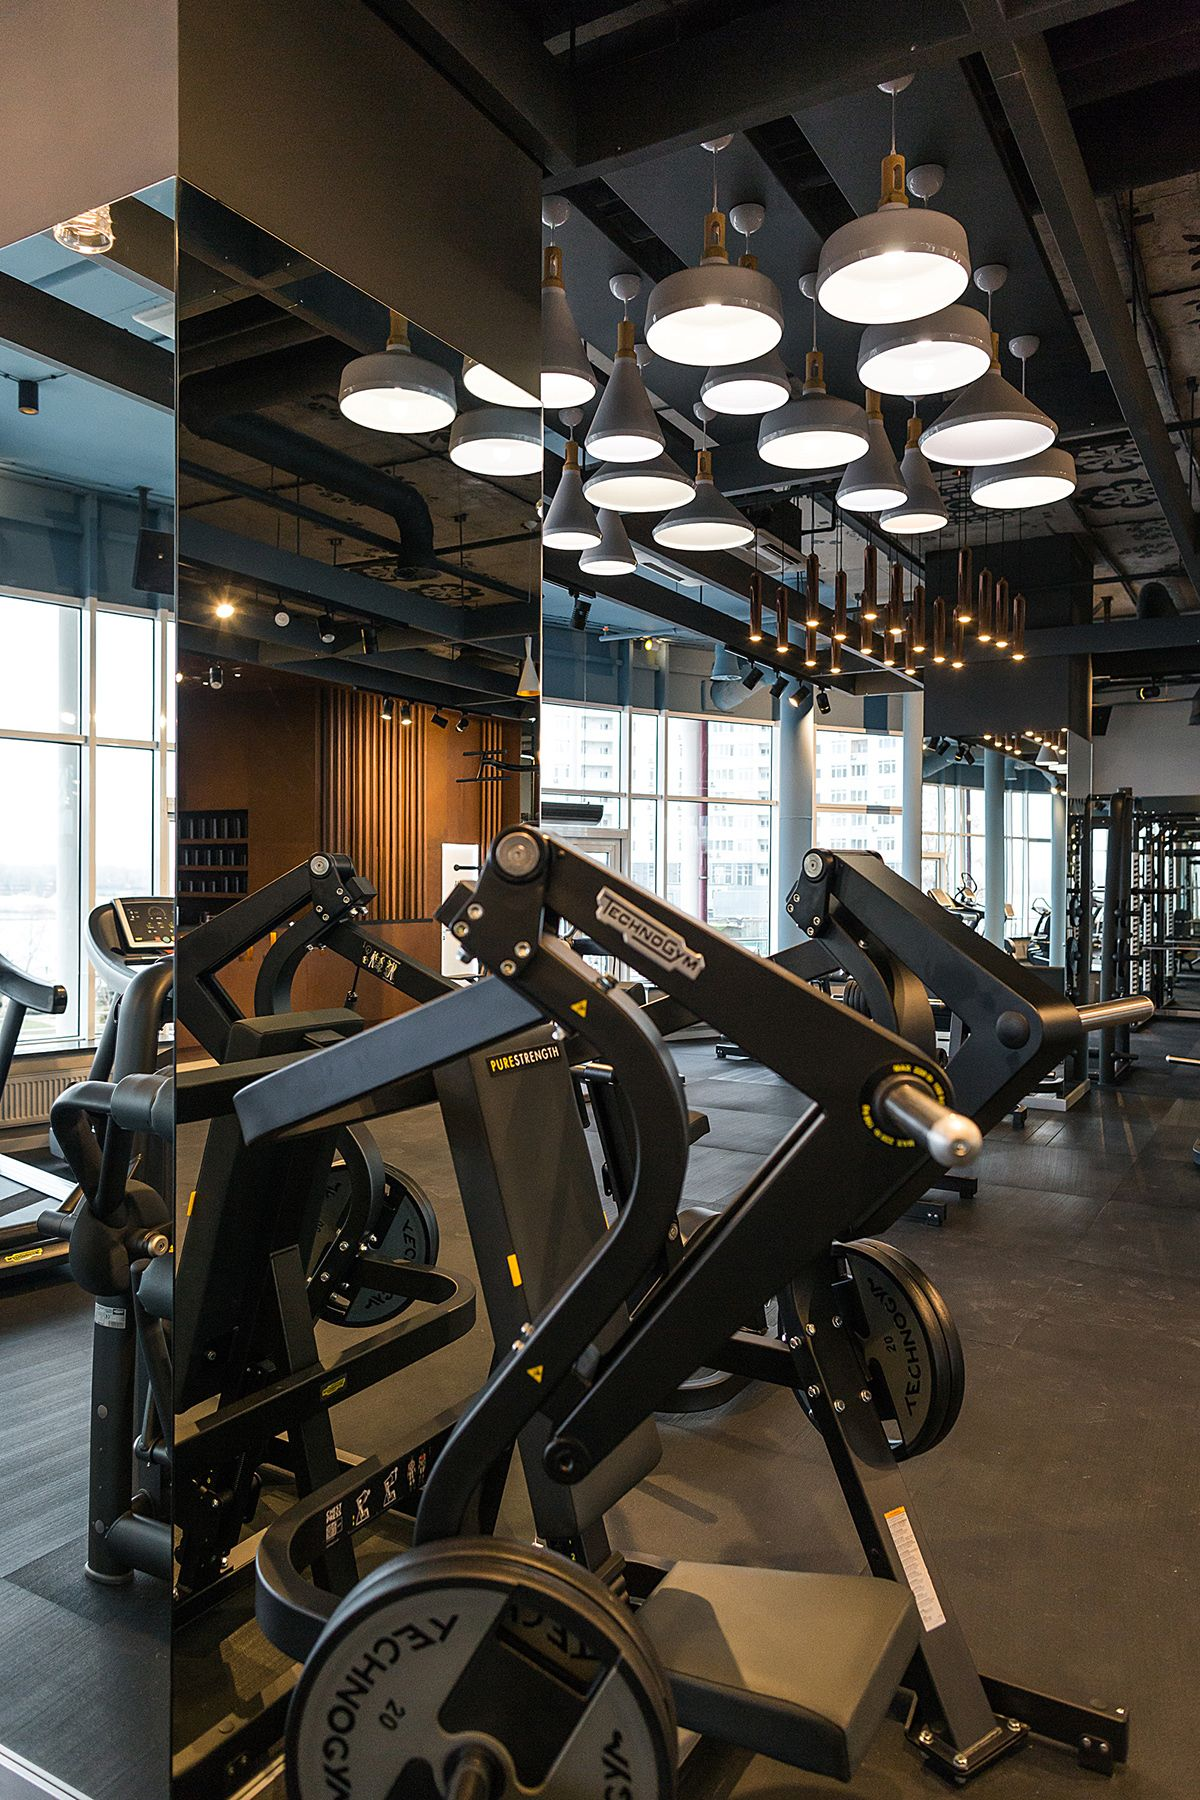 Fitness Club PALESTRA On Behance